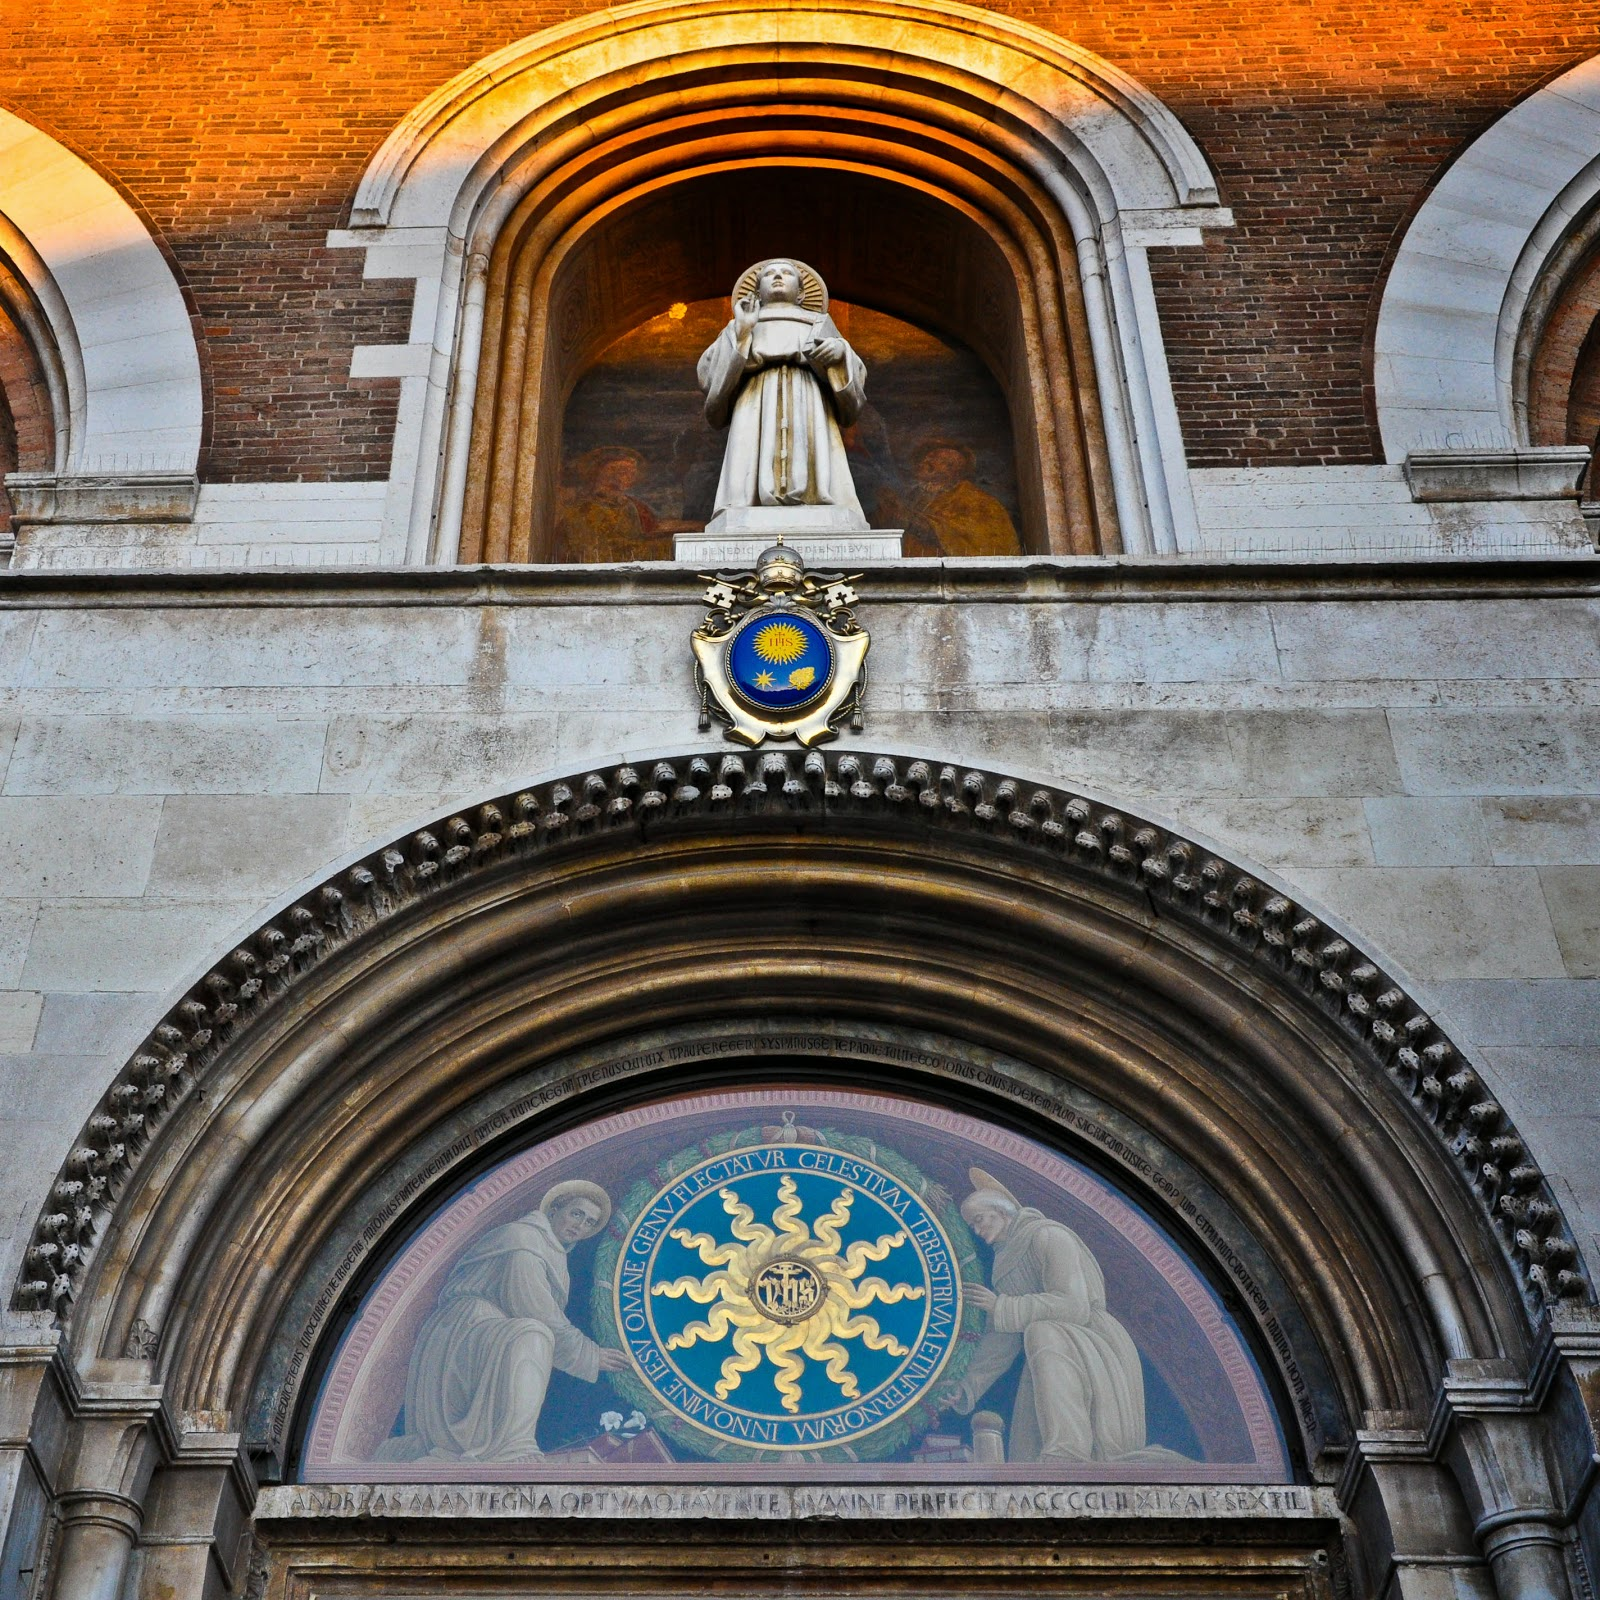 The top part of the main gate of the Basilica of Saint Anthony in Padua, Italy